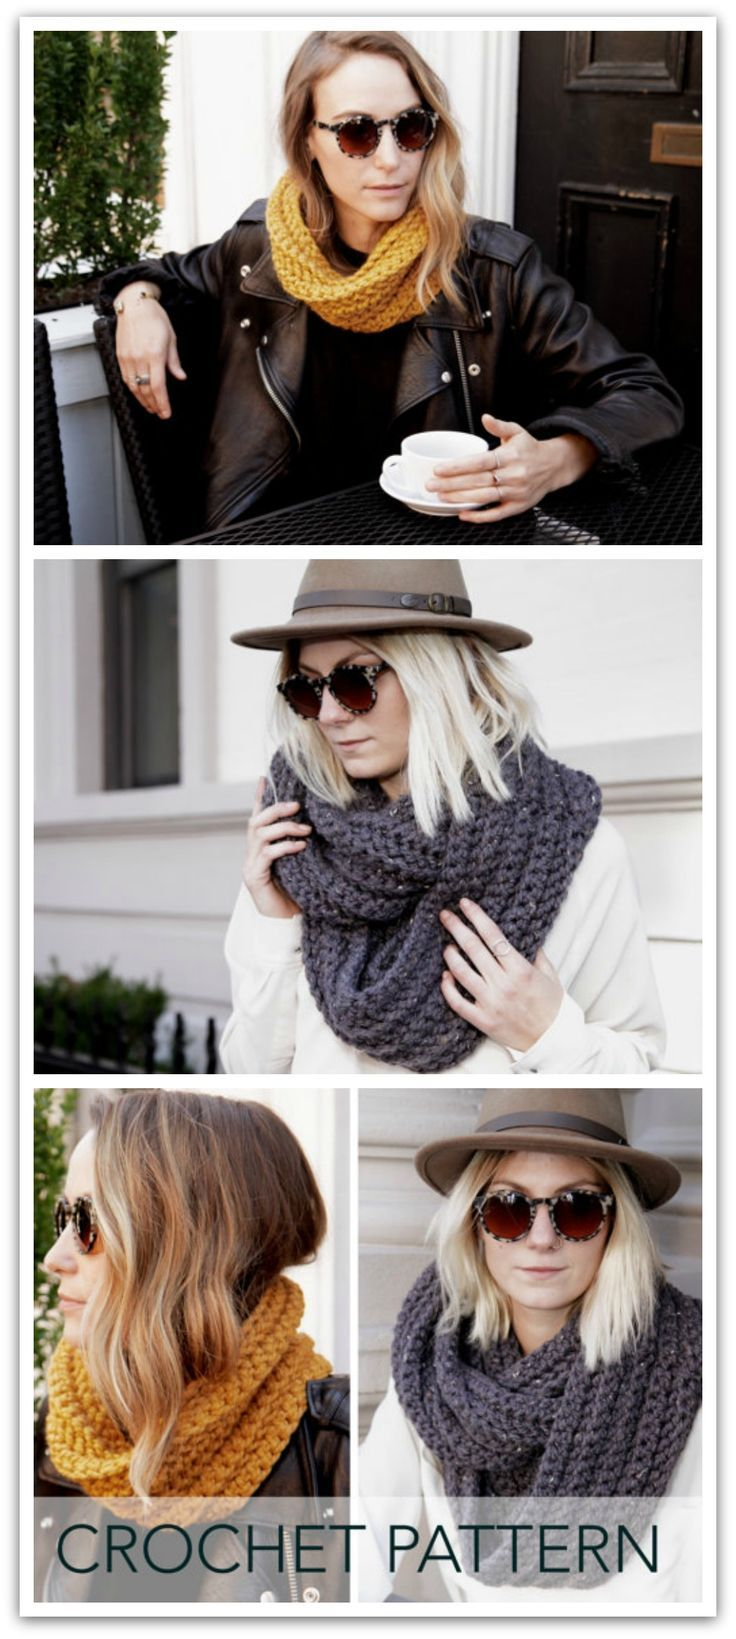 a2a2af68a71 Crochet Pattern    Herringbone Cowl Infinity Scarf Loop Unisex    Nomad  Loop PATTERN - Instant PDF download  ad  affiliate